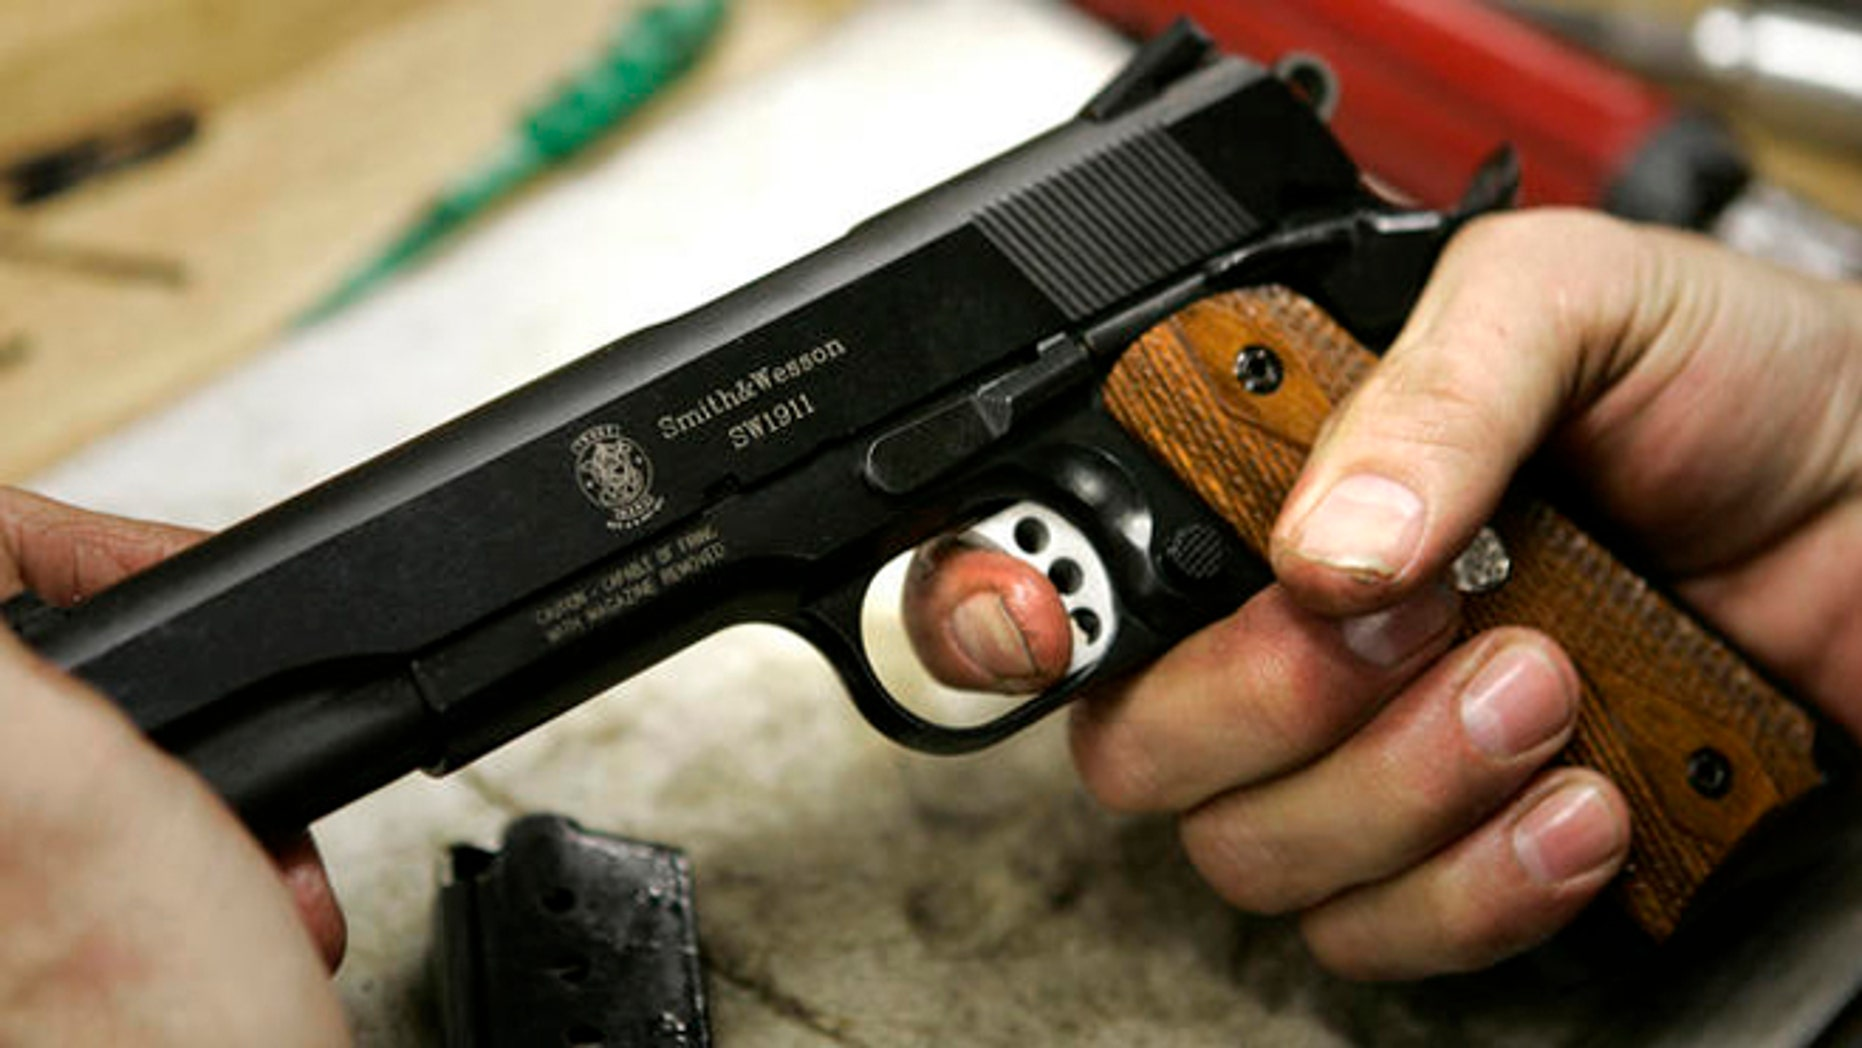 FILE: Undated: A model 1911 pistol is held in the hands of an assembler at the Smith & Wesson factory in Springfield, Mass.